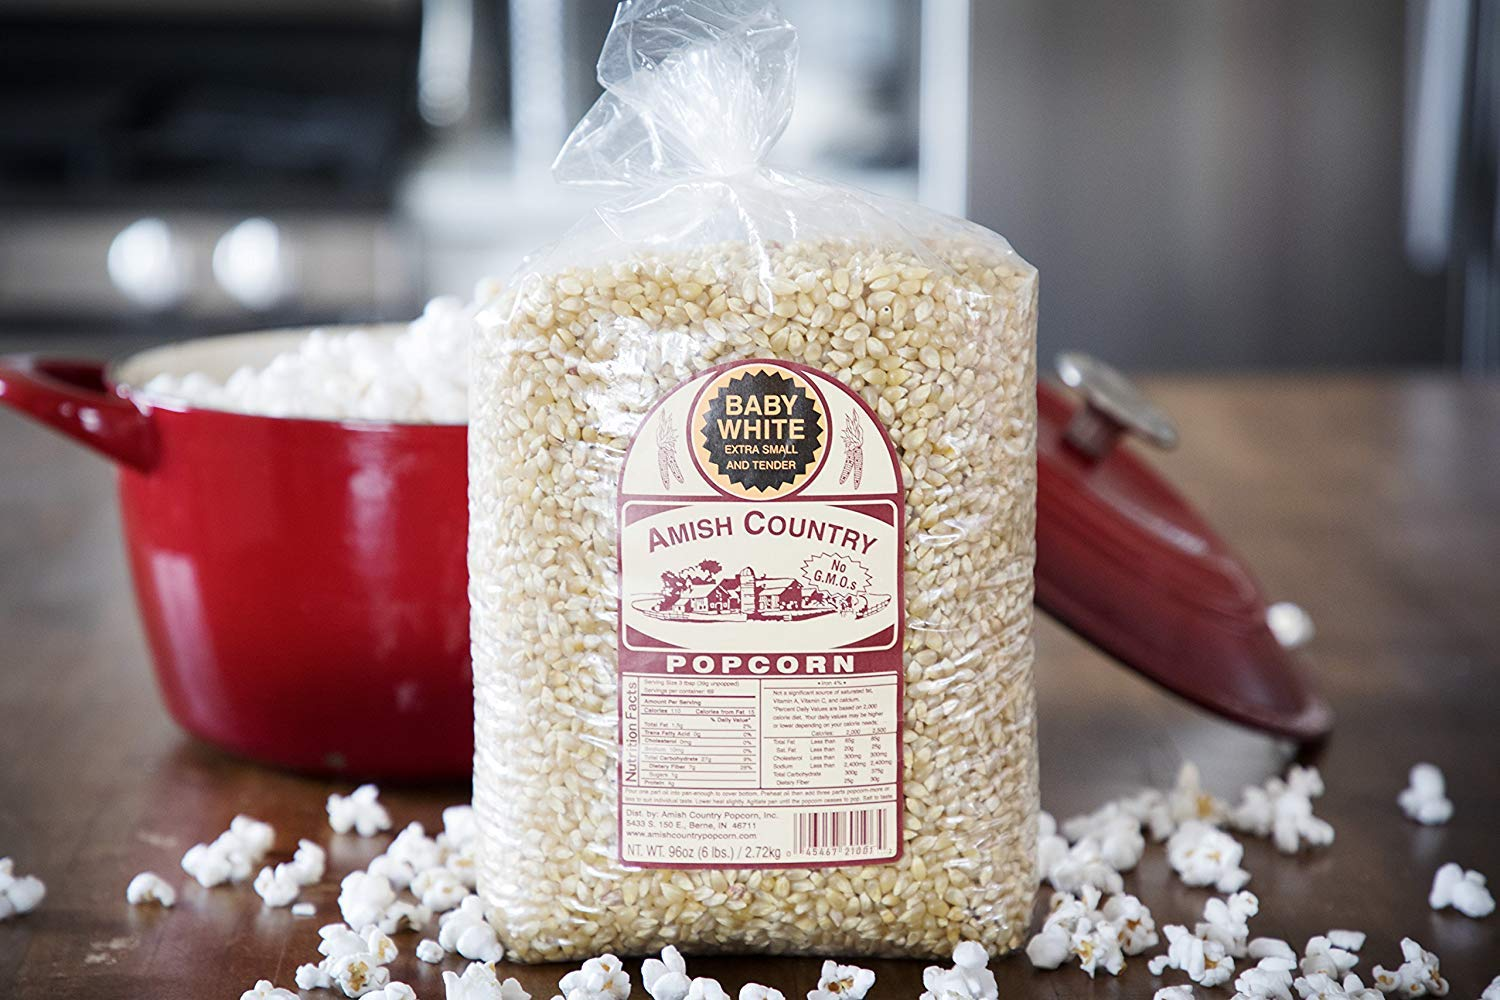 Amish Country Popcorn - Baby White (6 Pound Bag) - Small & Tender Popcorn - Old Fashioned And Delicious with Recipe Guide by Amish Country Popcorn (Image #4)